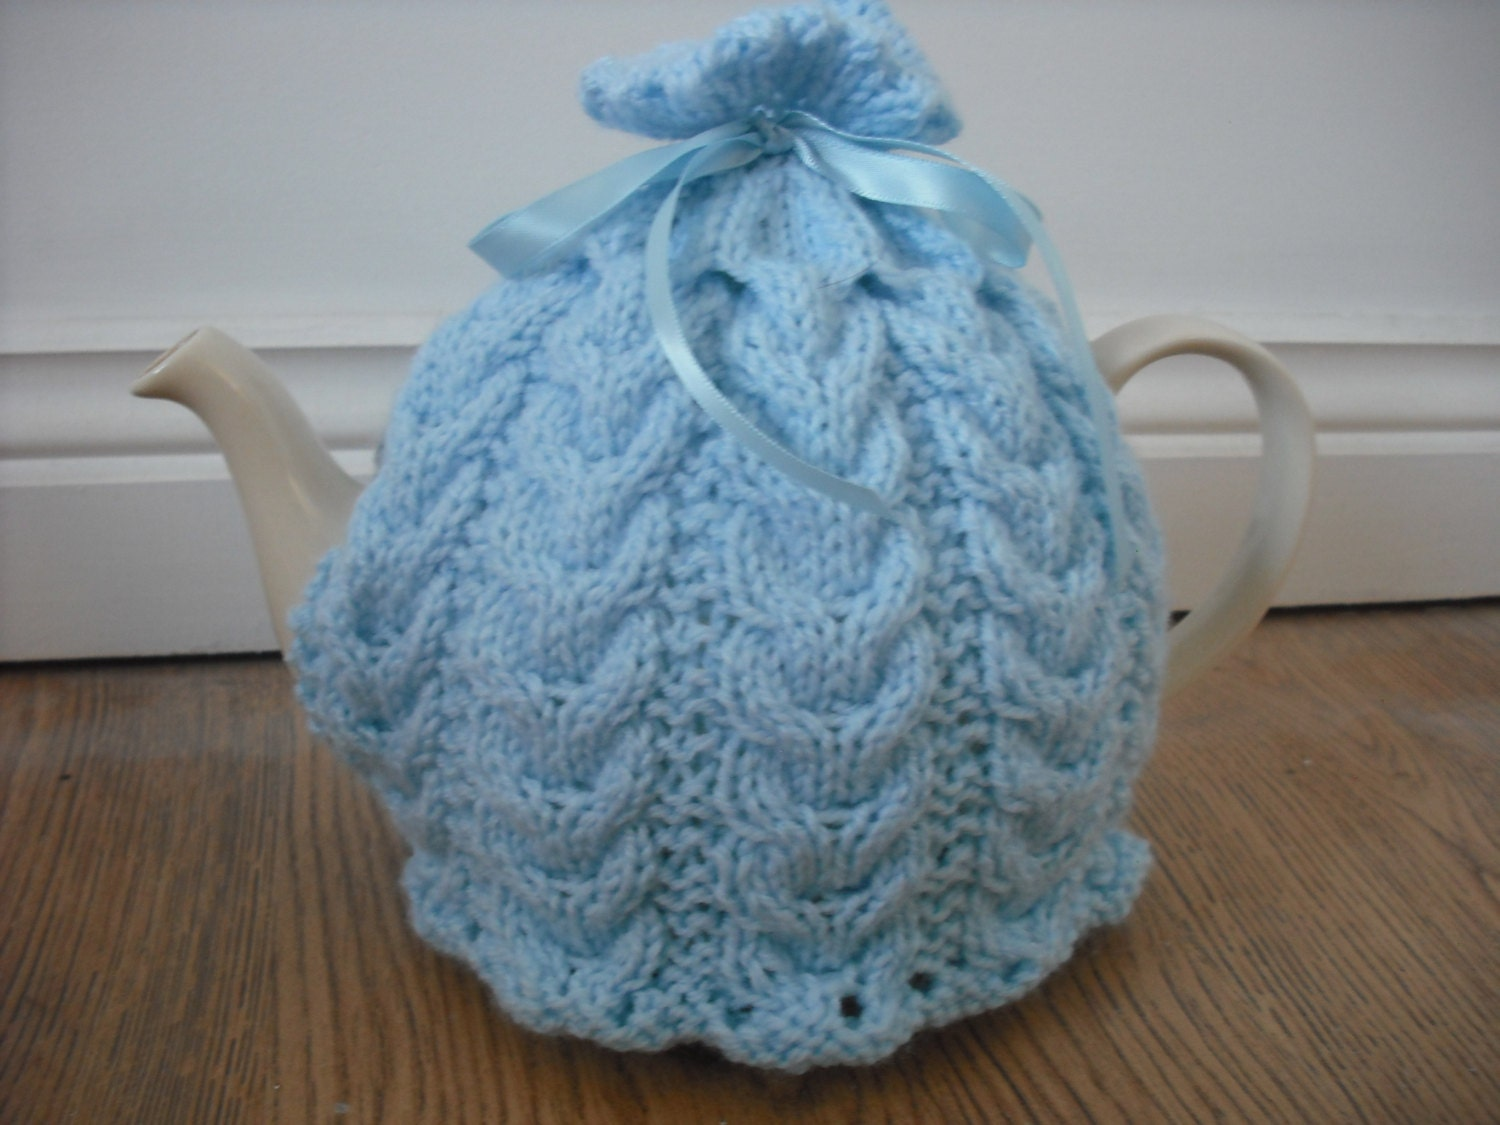 Hand Knitted Tea Cosy Patterns : Hand Knitted Tea Cosy in Blue with Cable by QuickSticksKnits